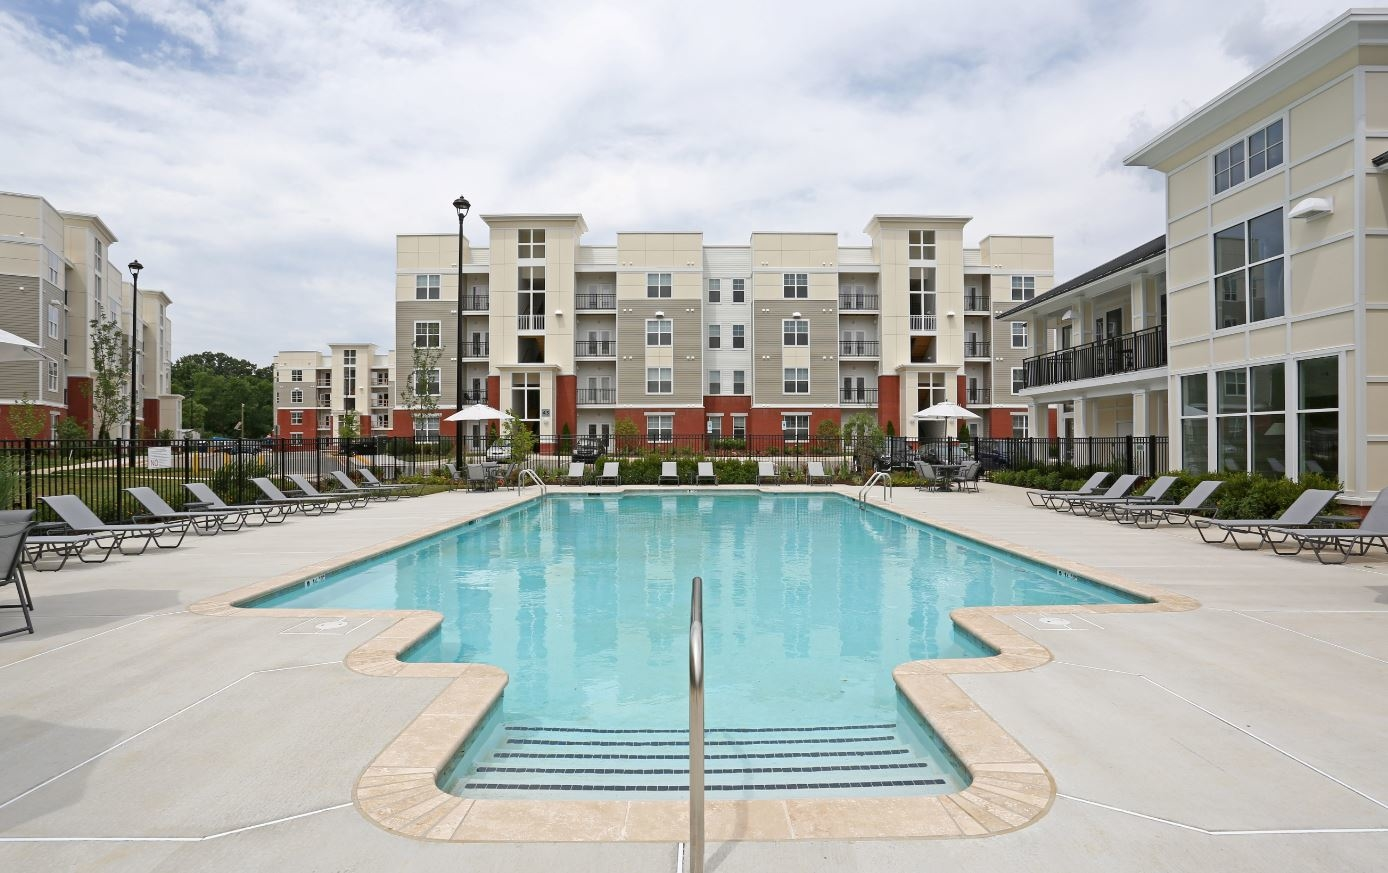 Aquia Fifteen Apartments At Towne Center Stafford Va